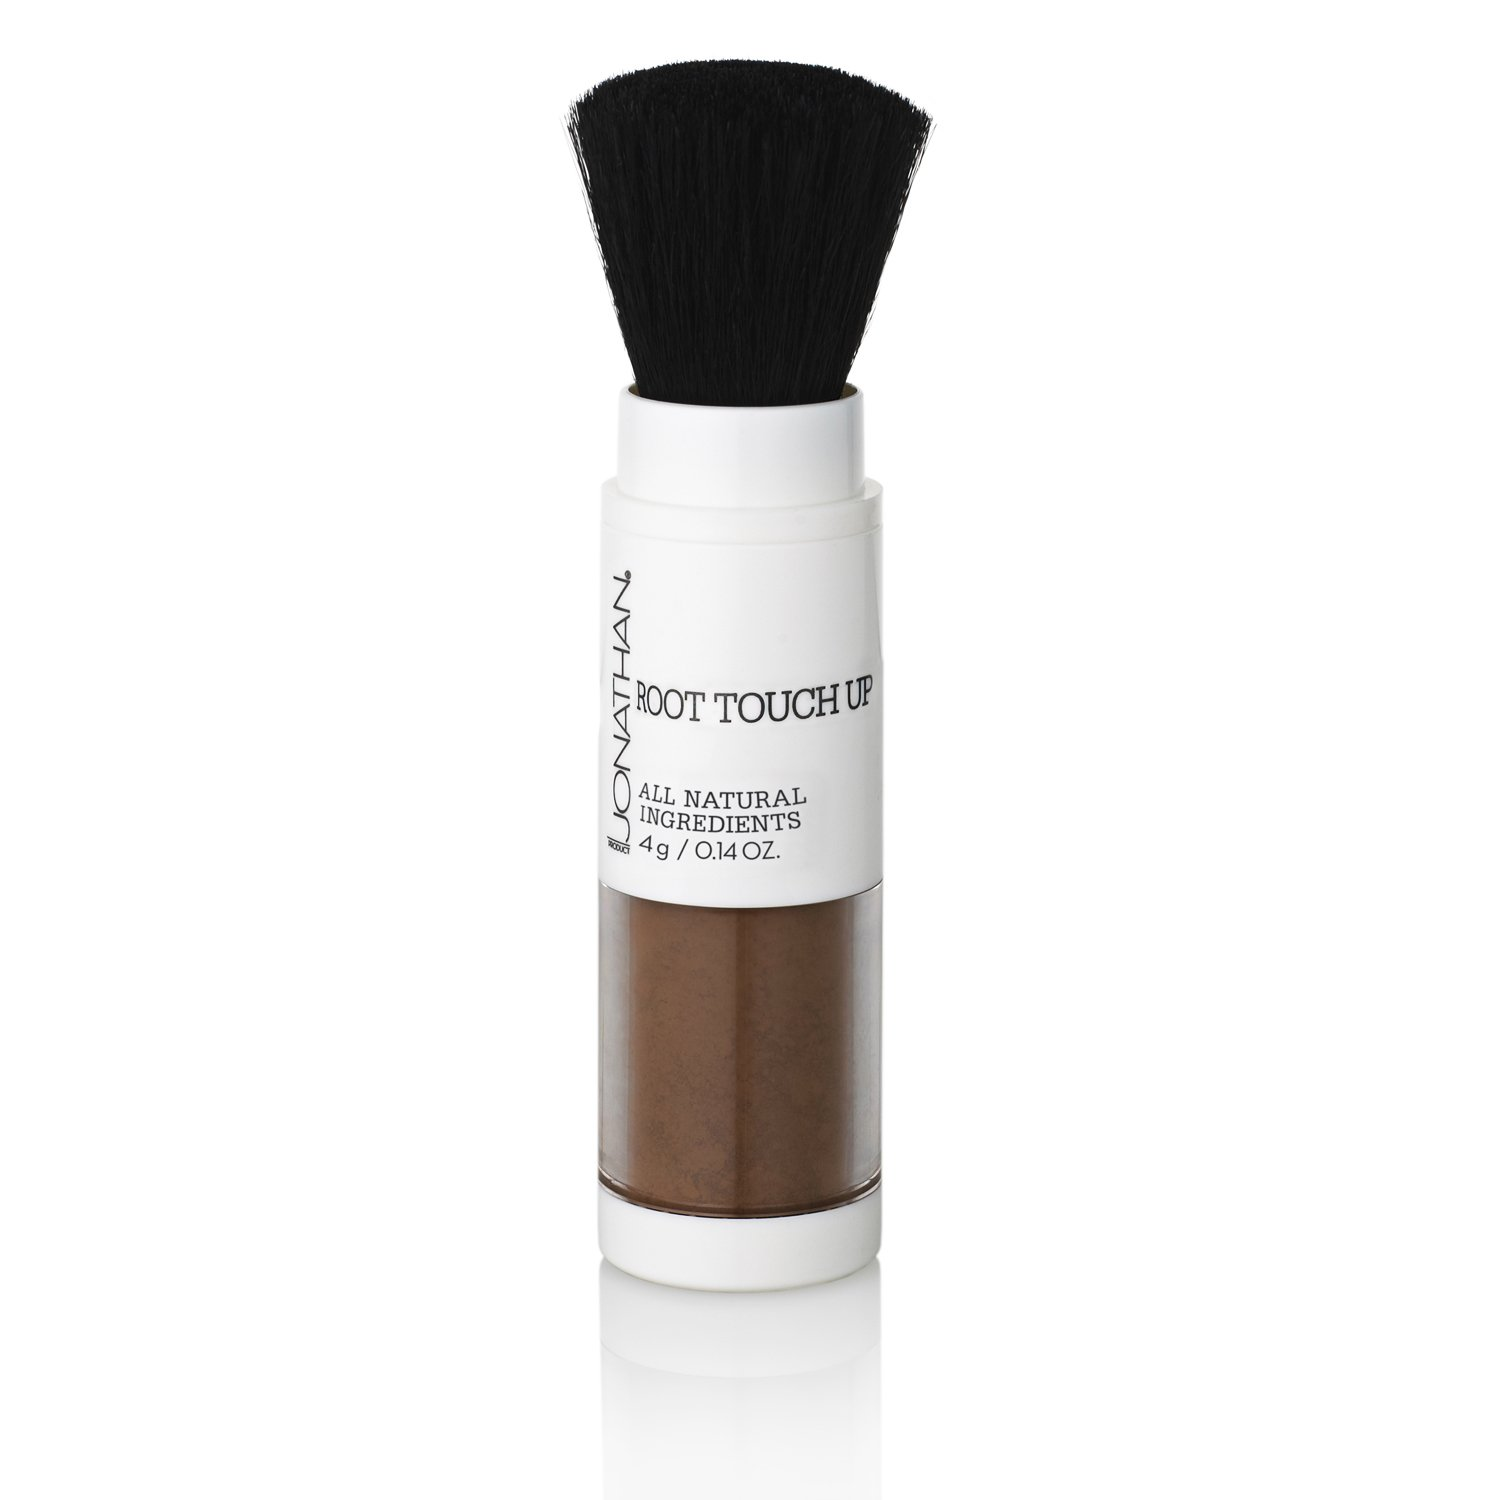 Jonathan Product - Root Touch Up, Brunette, Cover Up Your Gray Hair Between Coloring